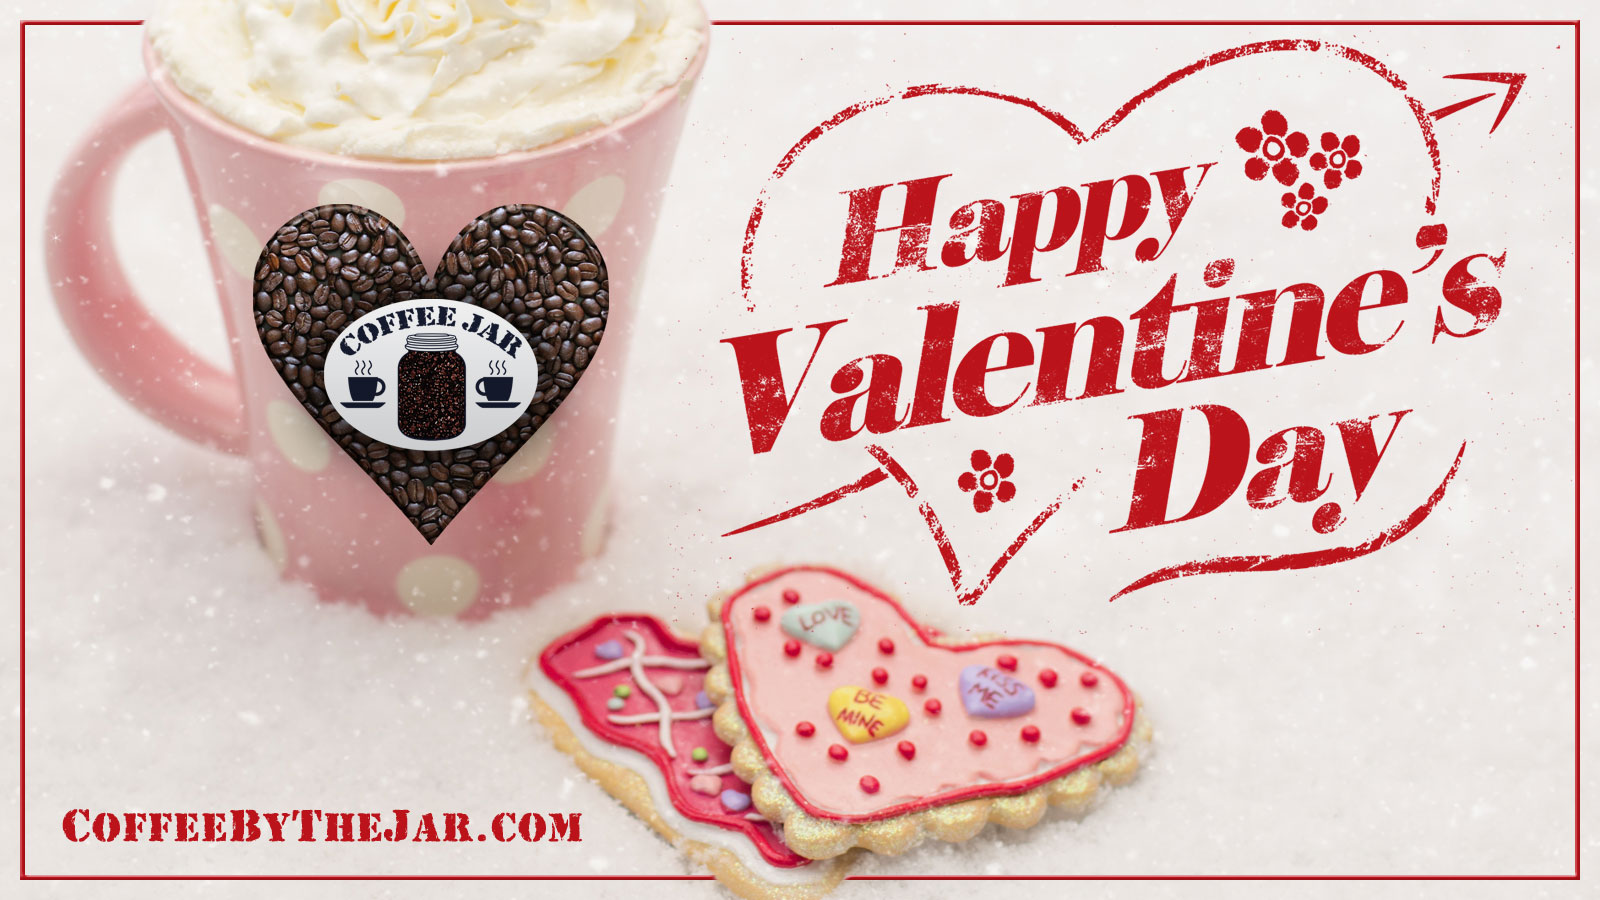 Coffee-Jar-Valentines-Day-wallpaper02-1600x900